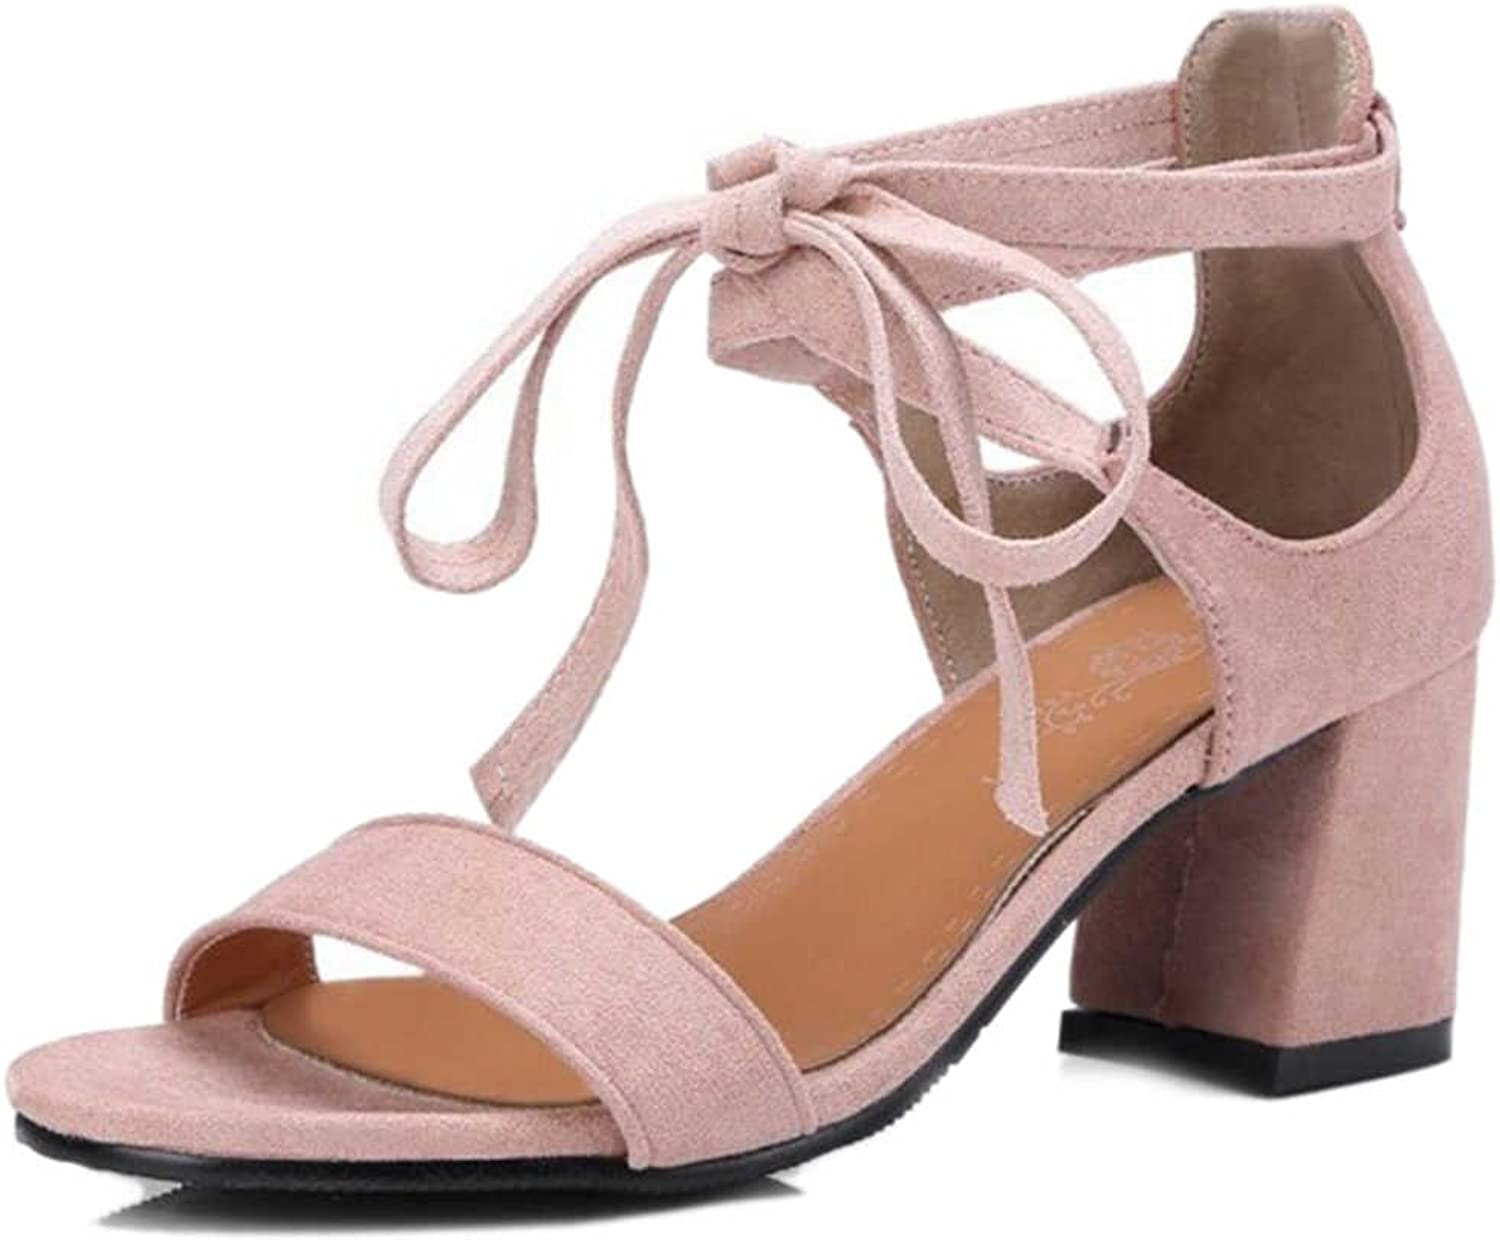 CuteFlats Sandals with Open Toe and Chunky Heel Cross Strap Sandals for All Women